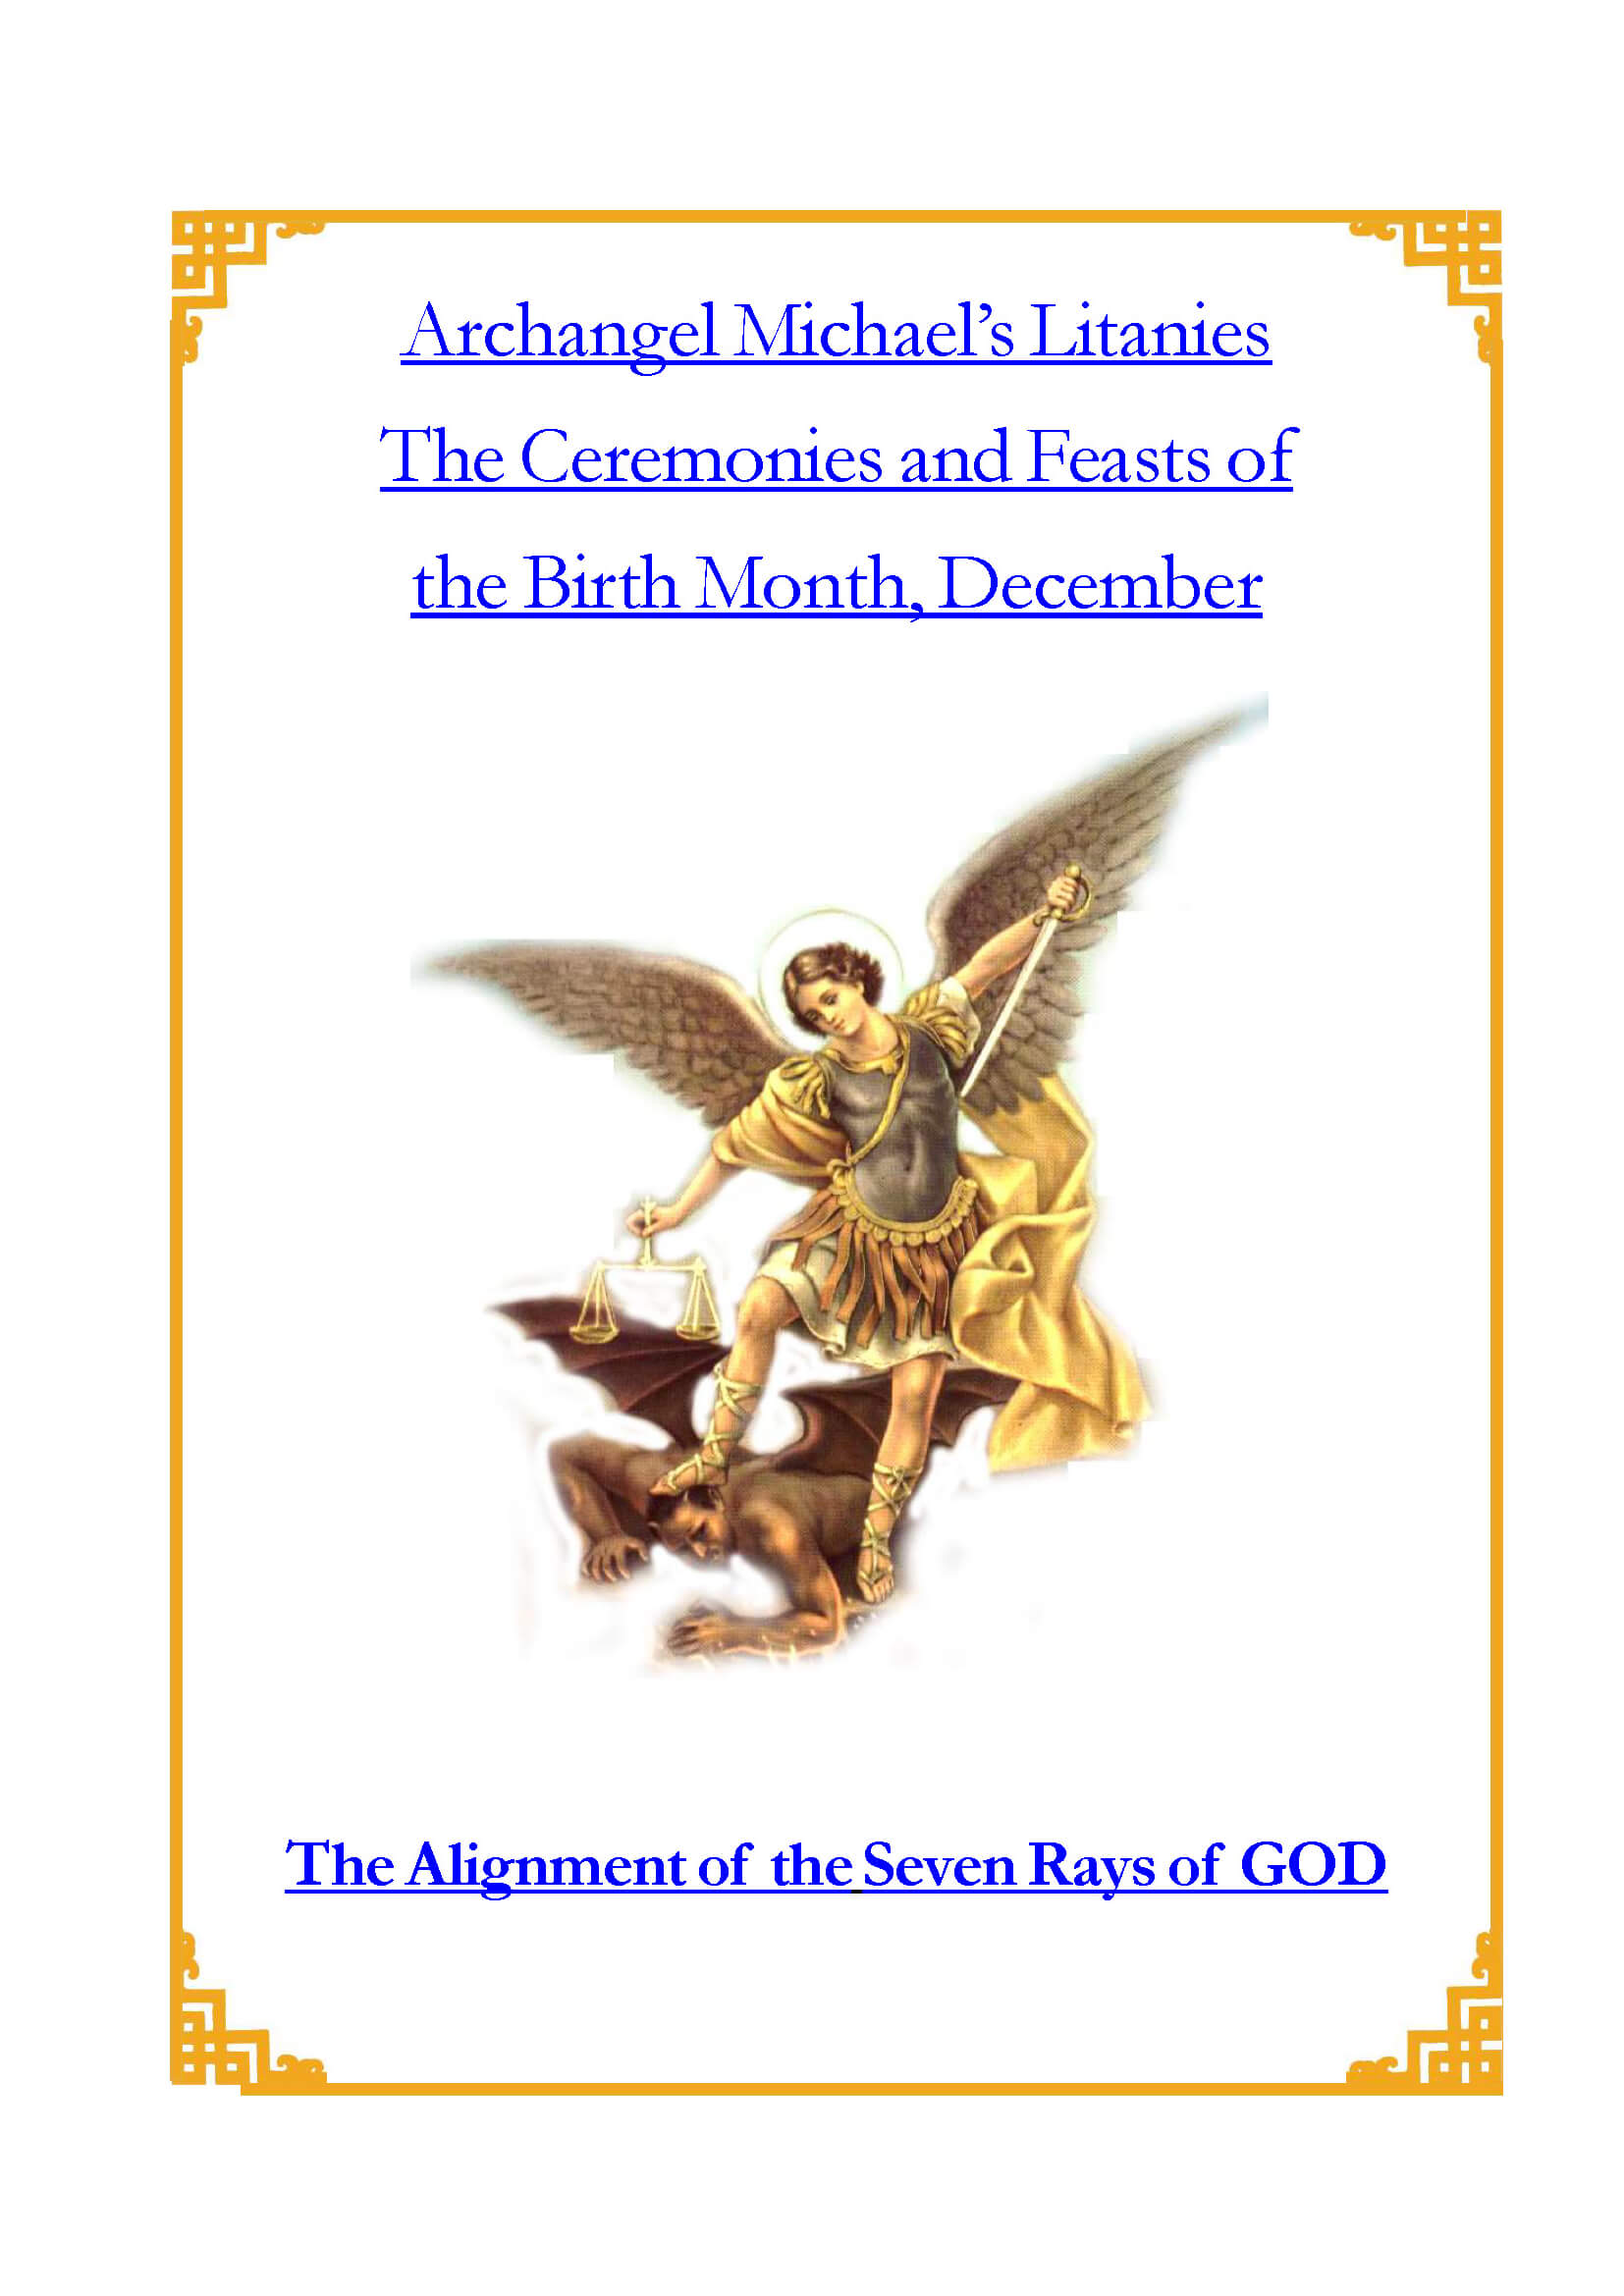 Archangel Michael's Litanies - The Ceremonies and Feast of the Birth Month, December - The Alignment of the Seven Rays of GOD